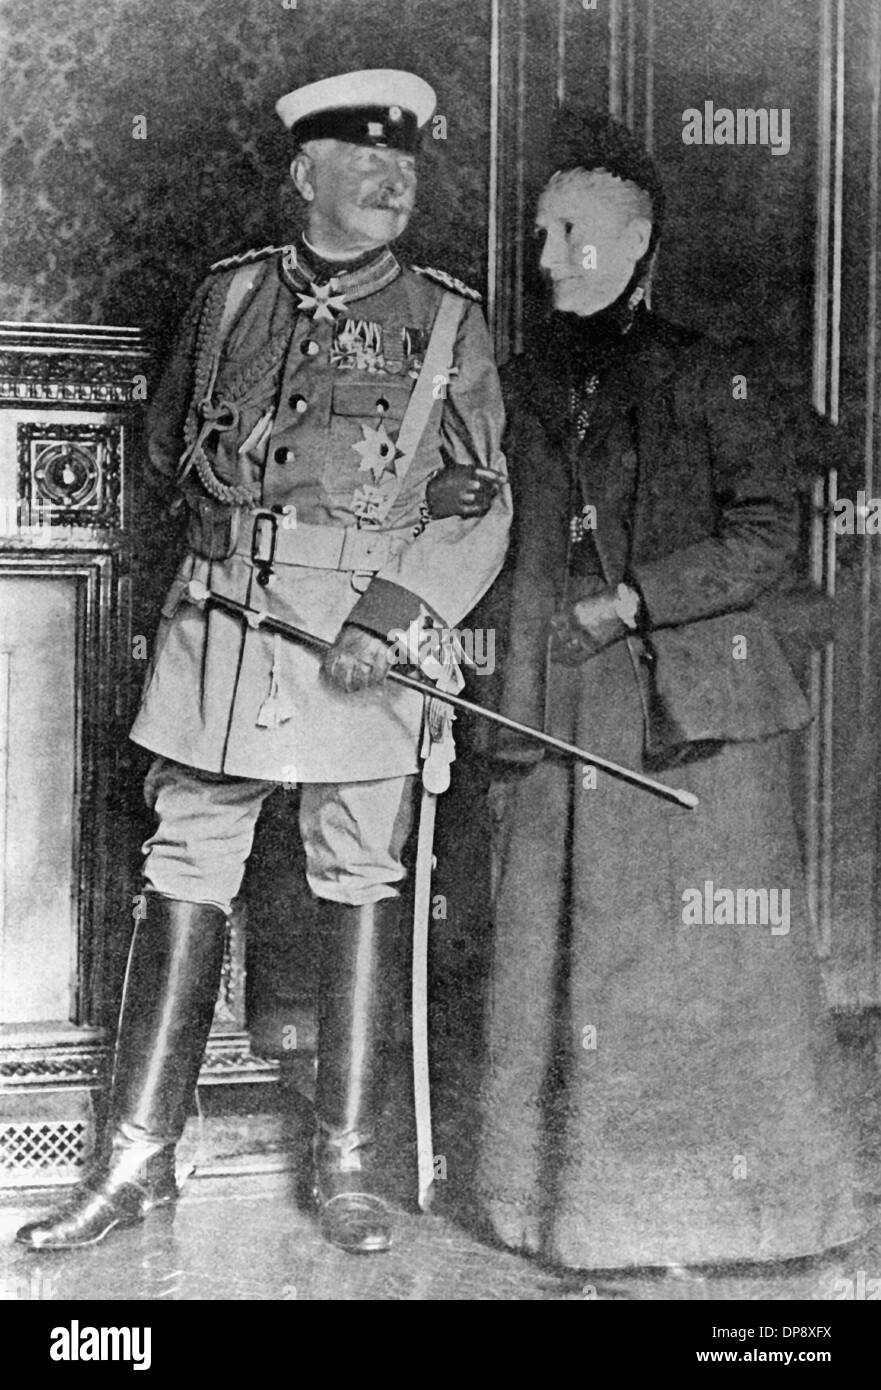 Commander-in-chief of the German troops during the Boxer Rebellion, Alfred Graf von Waldersee, with his wife shortly before the departure to China. Climax of the Boxer Rebellion was the assassination of the German ambassador Klemens Freiherr von Ketteler on the 19th of June in 1900 as well as the besiegement of the embassy quarter in Beijing from the 20th of June until the 14th of August in 1900 by an expedition corps consisting of eight states (Germany, France, Great Britain, Italy, Japan, Austria-Hungary, Russia and the USA). Numerous bloody punitive expeditions against the rebels (boxers = - Stock Image